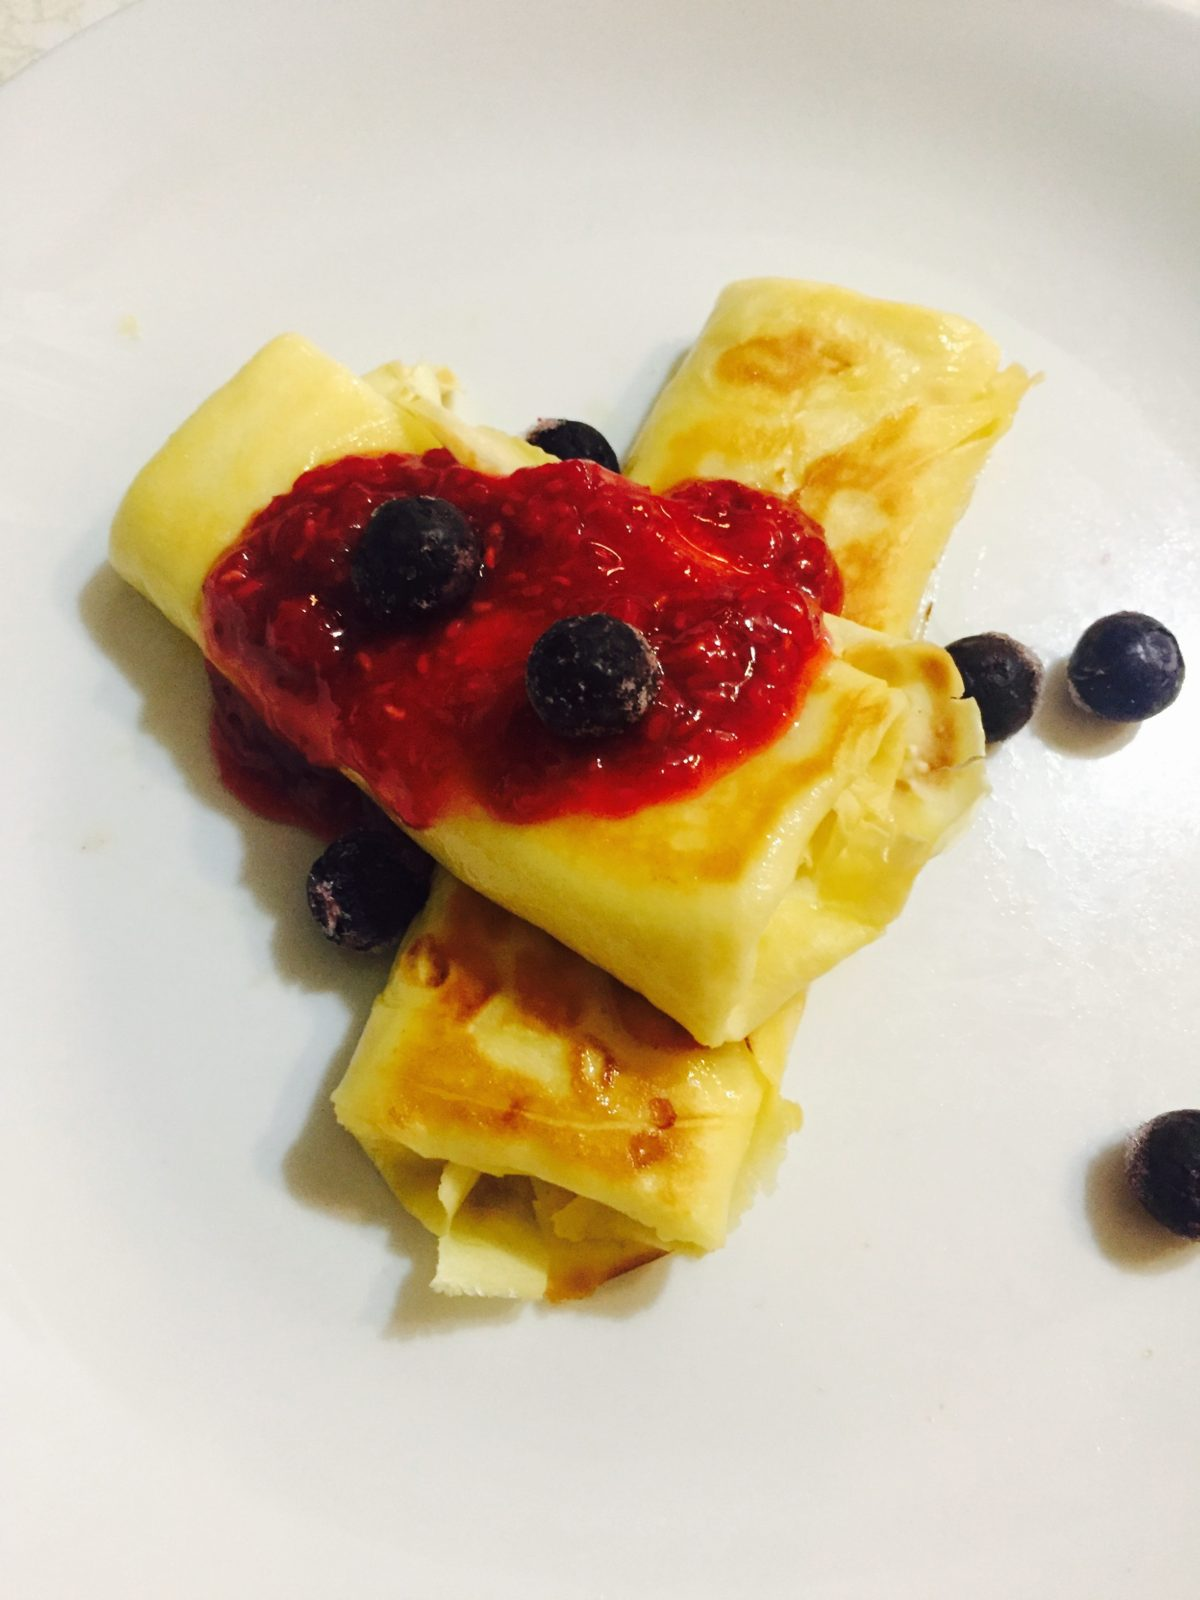 Cheese Blintz with Raspberry Sauce